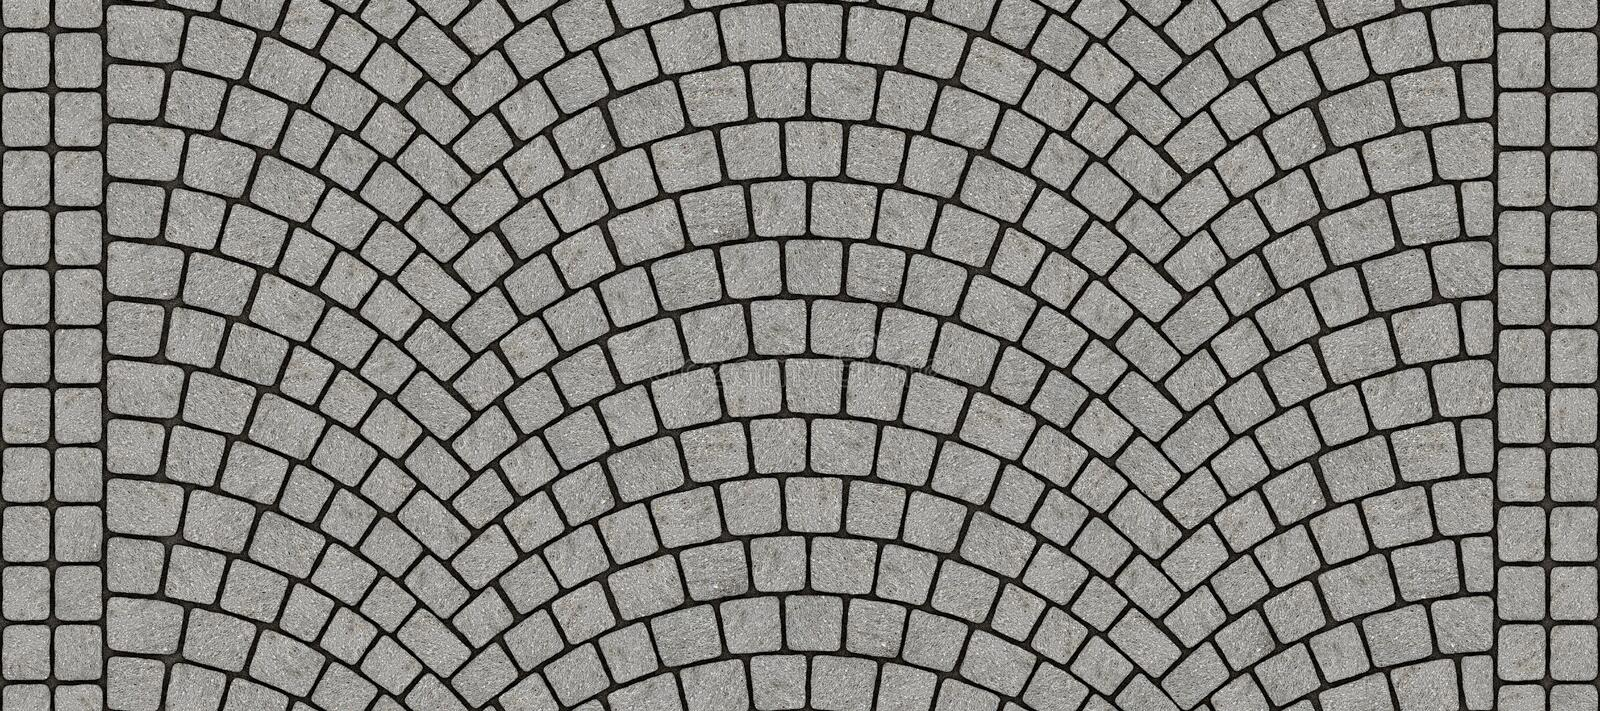 Road curved cobblestone texture 125. Cobblestone arched pavement road with edge courses at the sidewalk. Seamless tileable repeating 3D rendering texture royalty free illustration